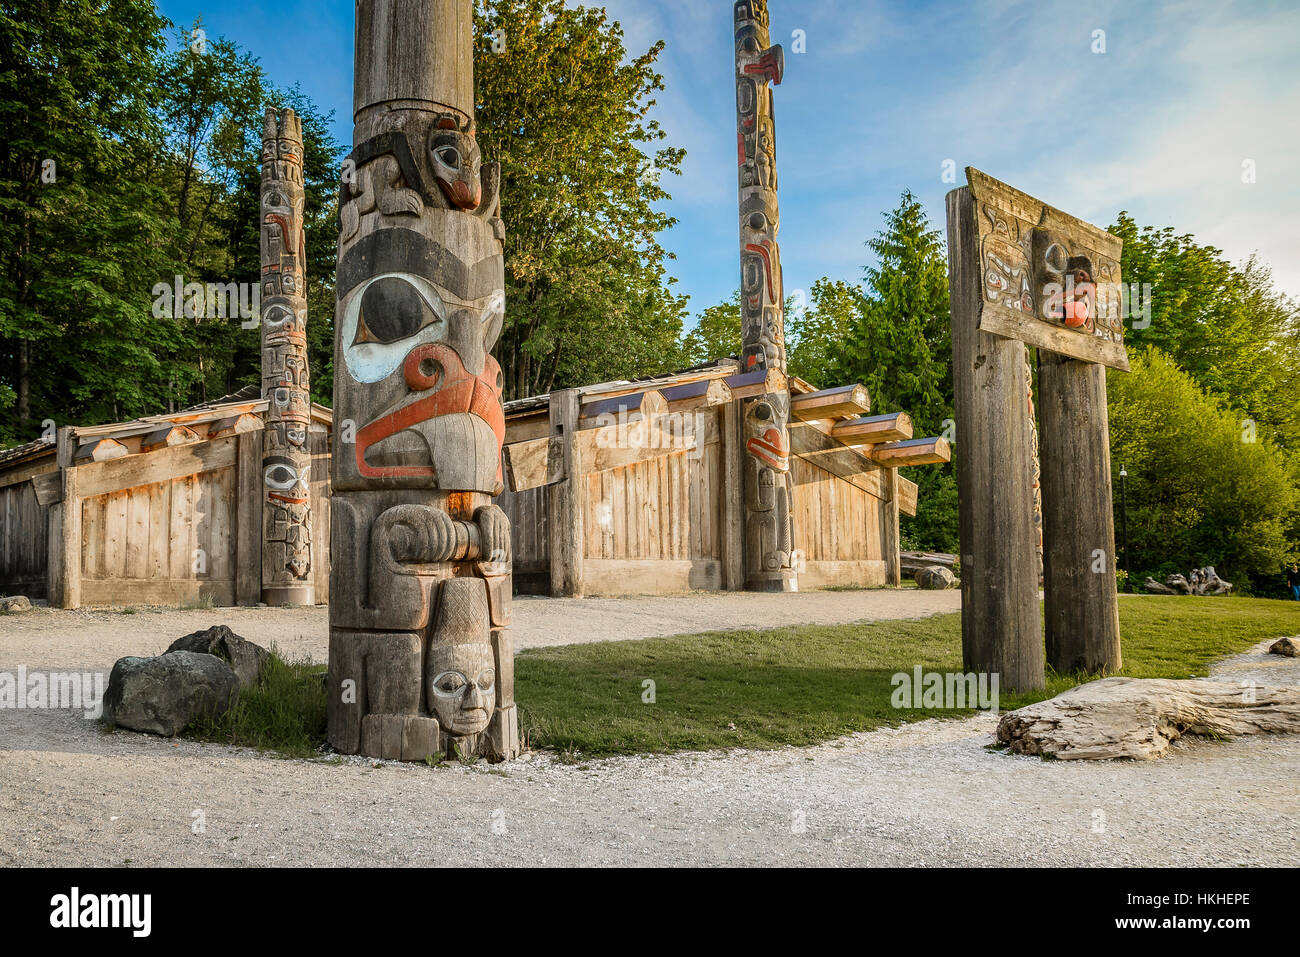 Haida longhouse and totem poles, Museum of Anthropology, Vancouver, British Columbia, Canada - Stock Image